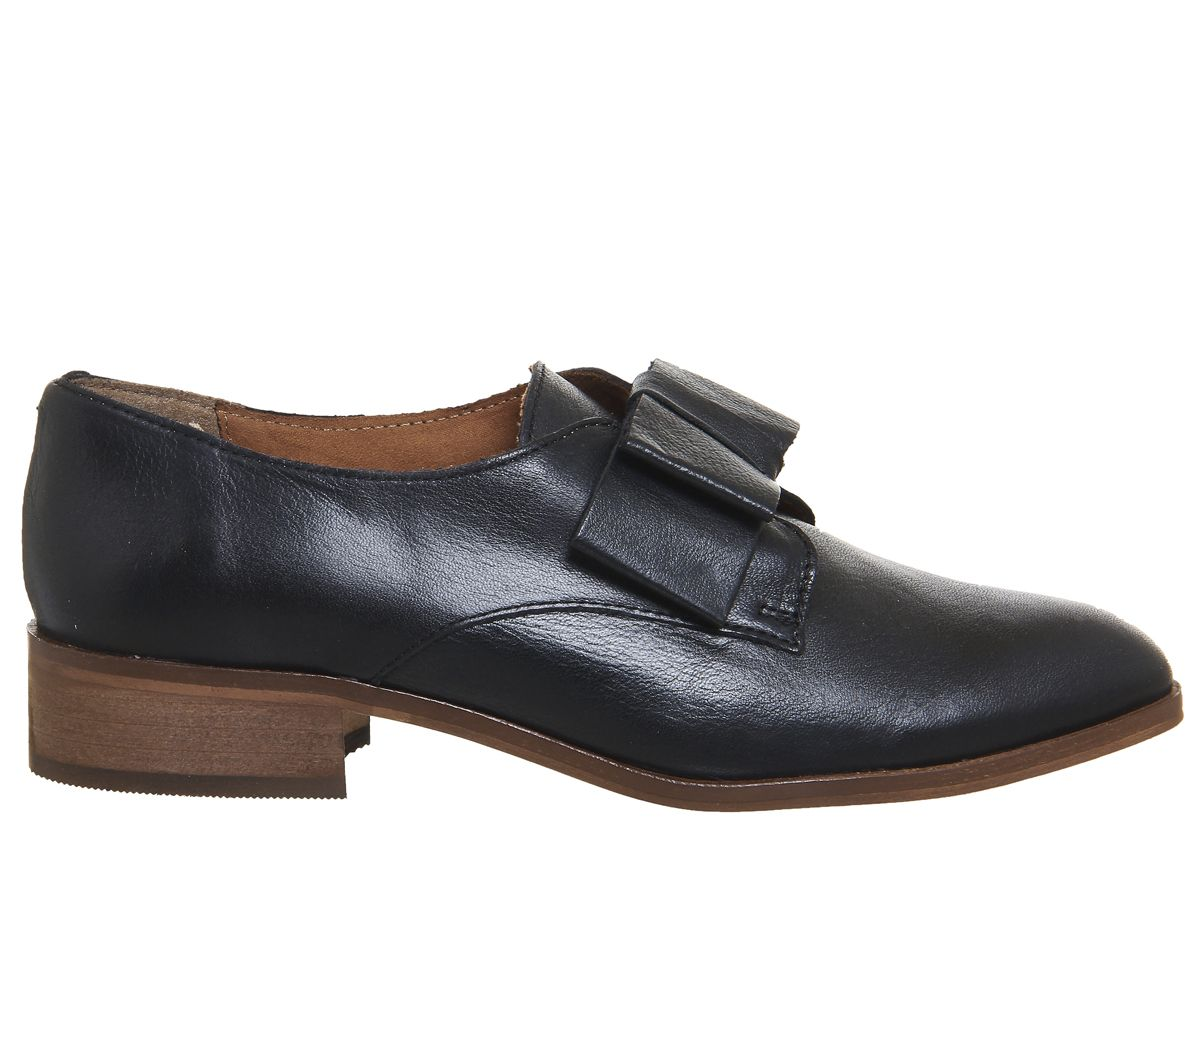 5d63bd5caaf5 Office Flexa Slip On With Bow Black Leather - Flats